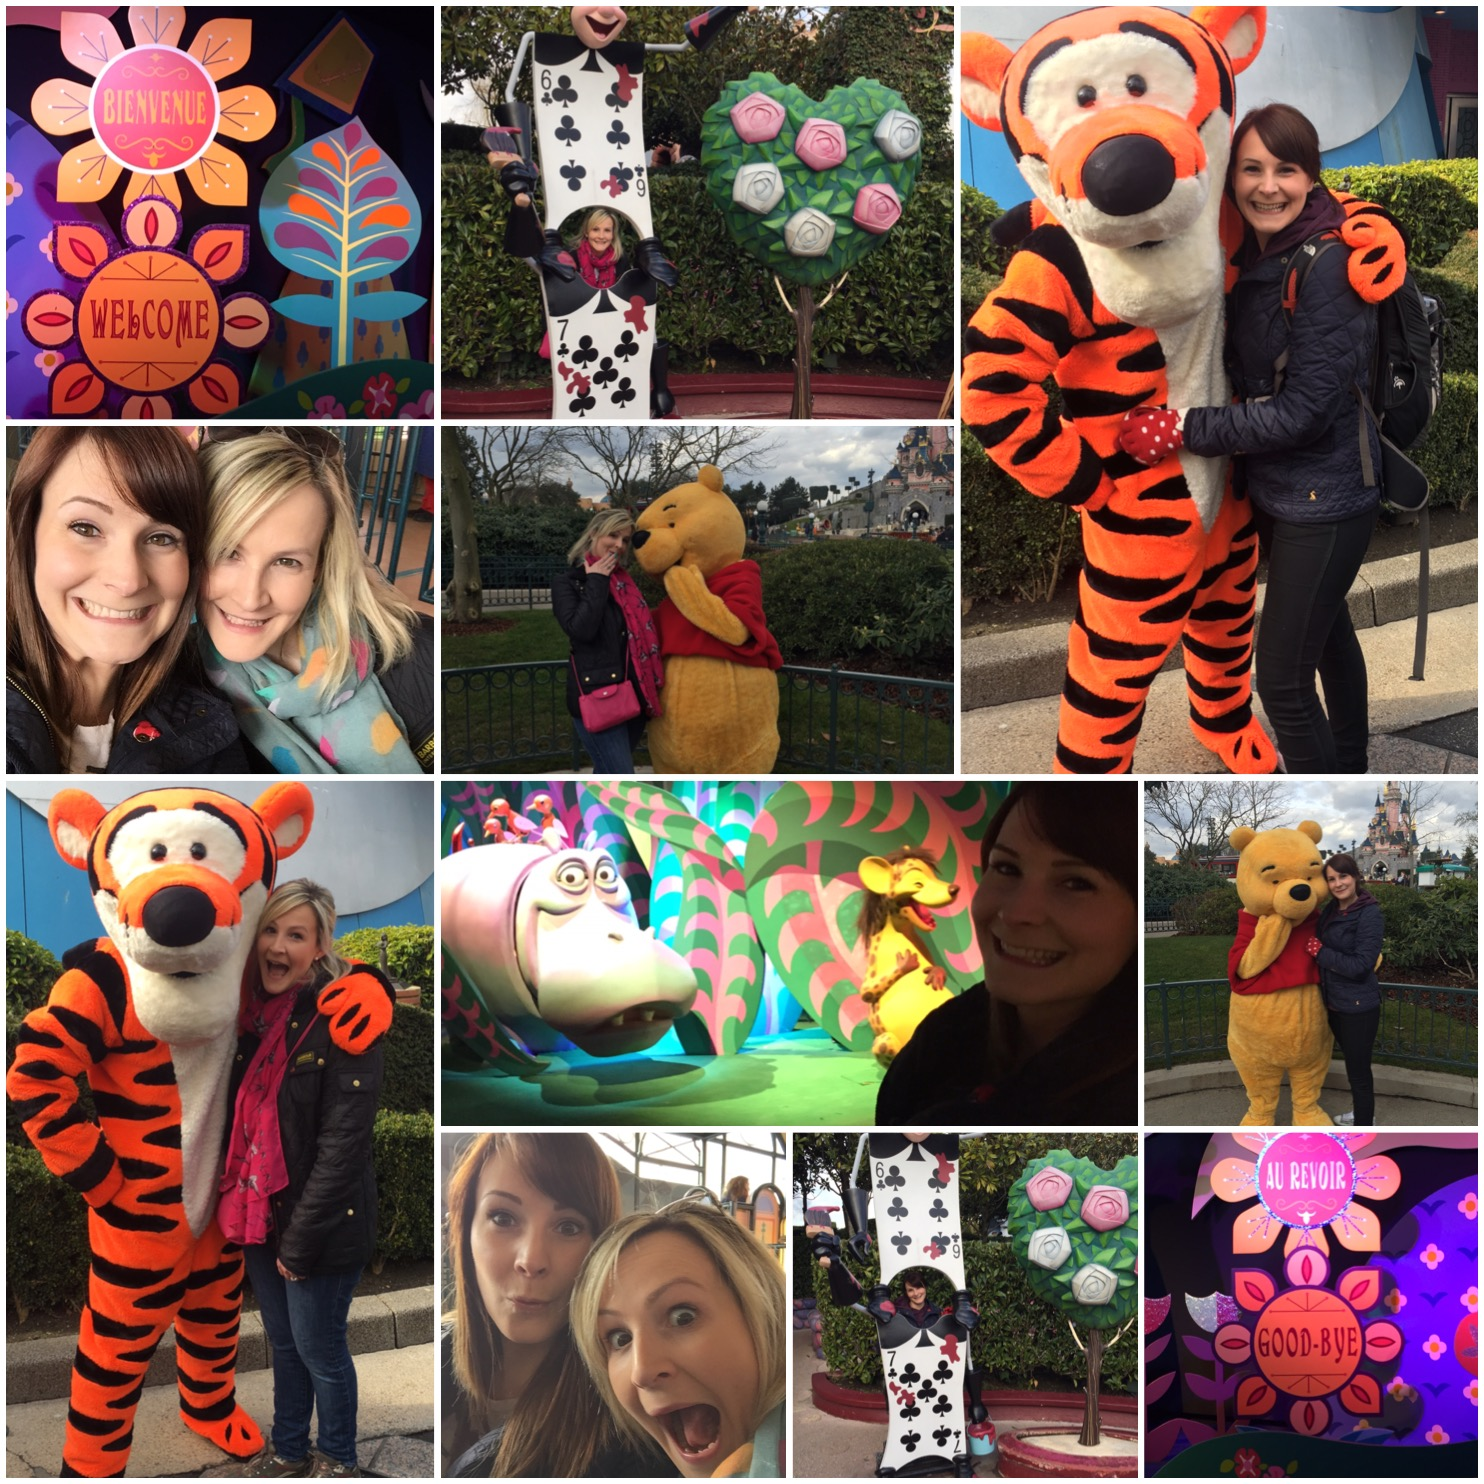 My lovely sister and I having some Disney fun times - it's for big kids too!!